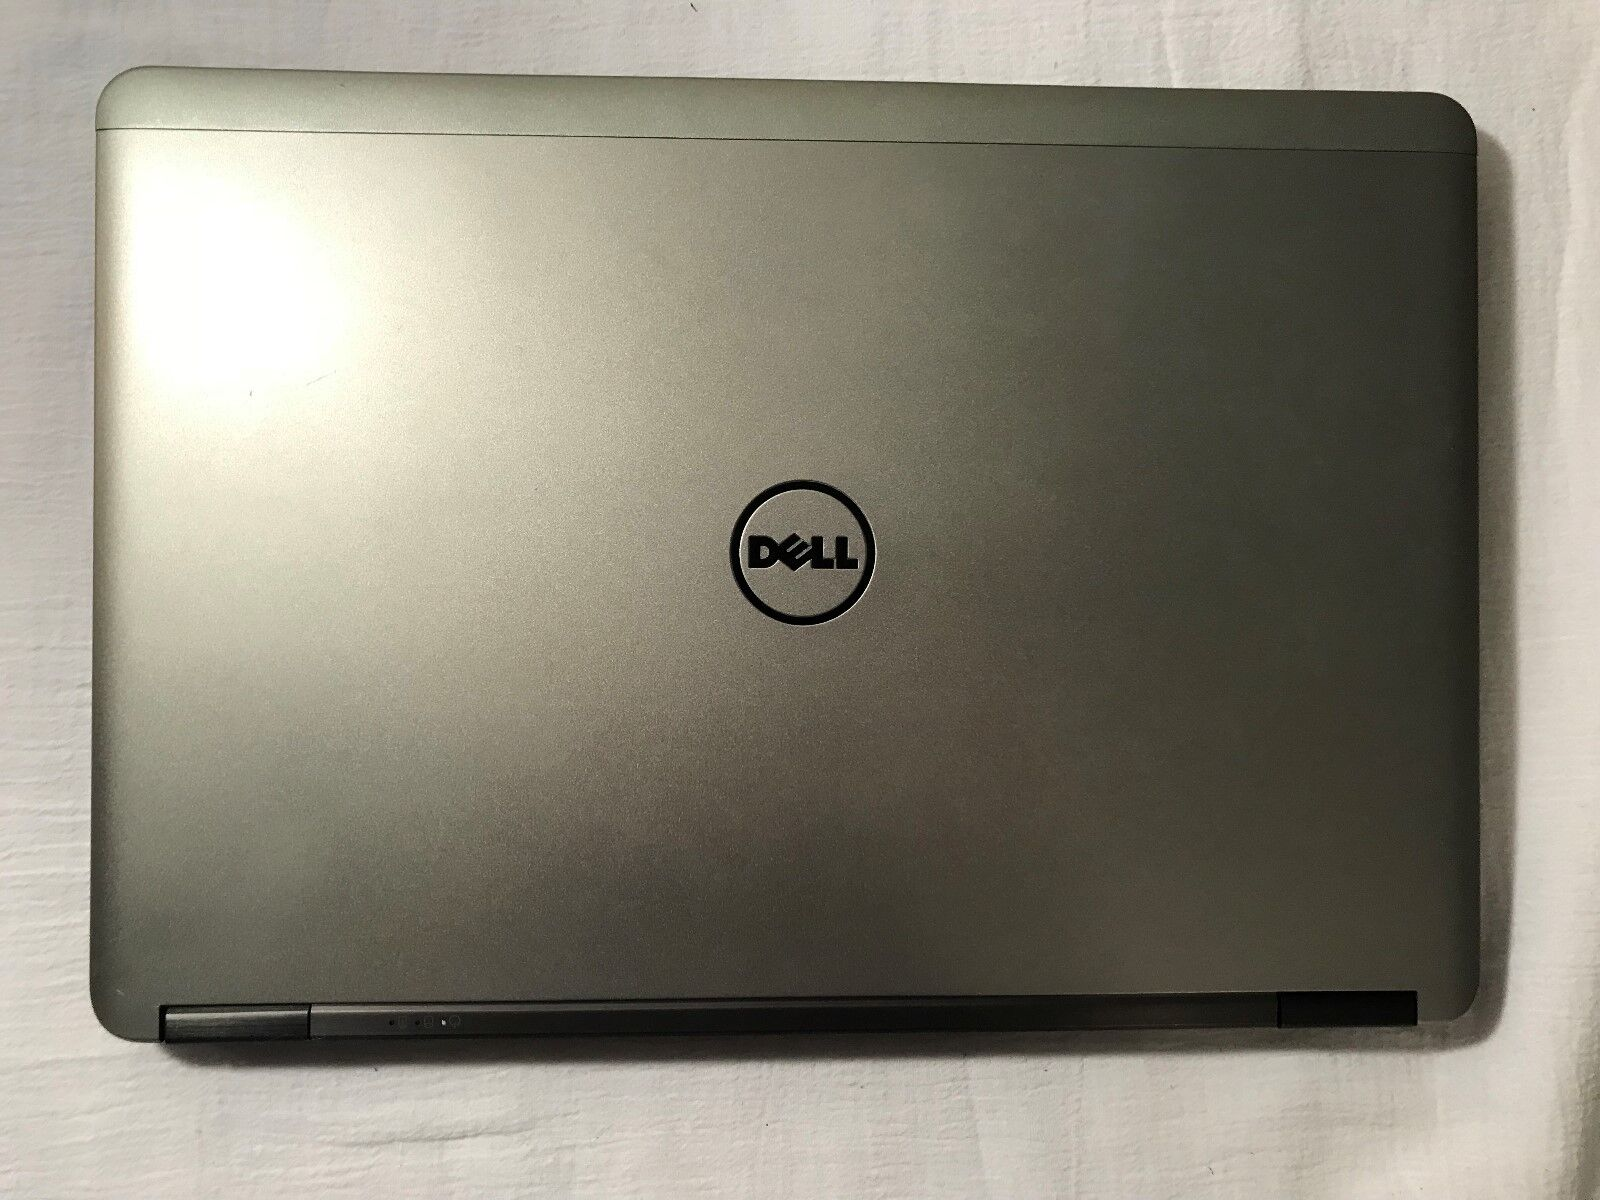 Dell Latitude E7440 i7 2.10GHz/2.70GHz 8GB 300GB SSD With-Office 2013/Acrobat XI